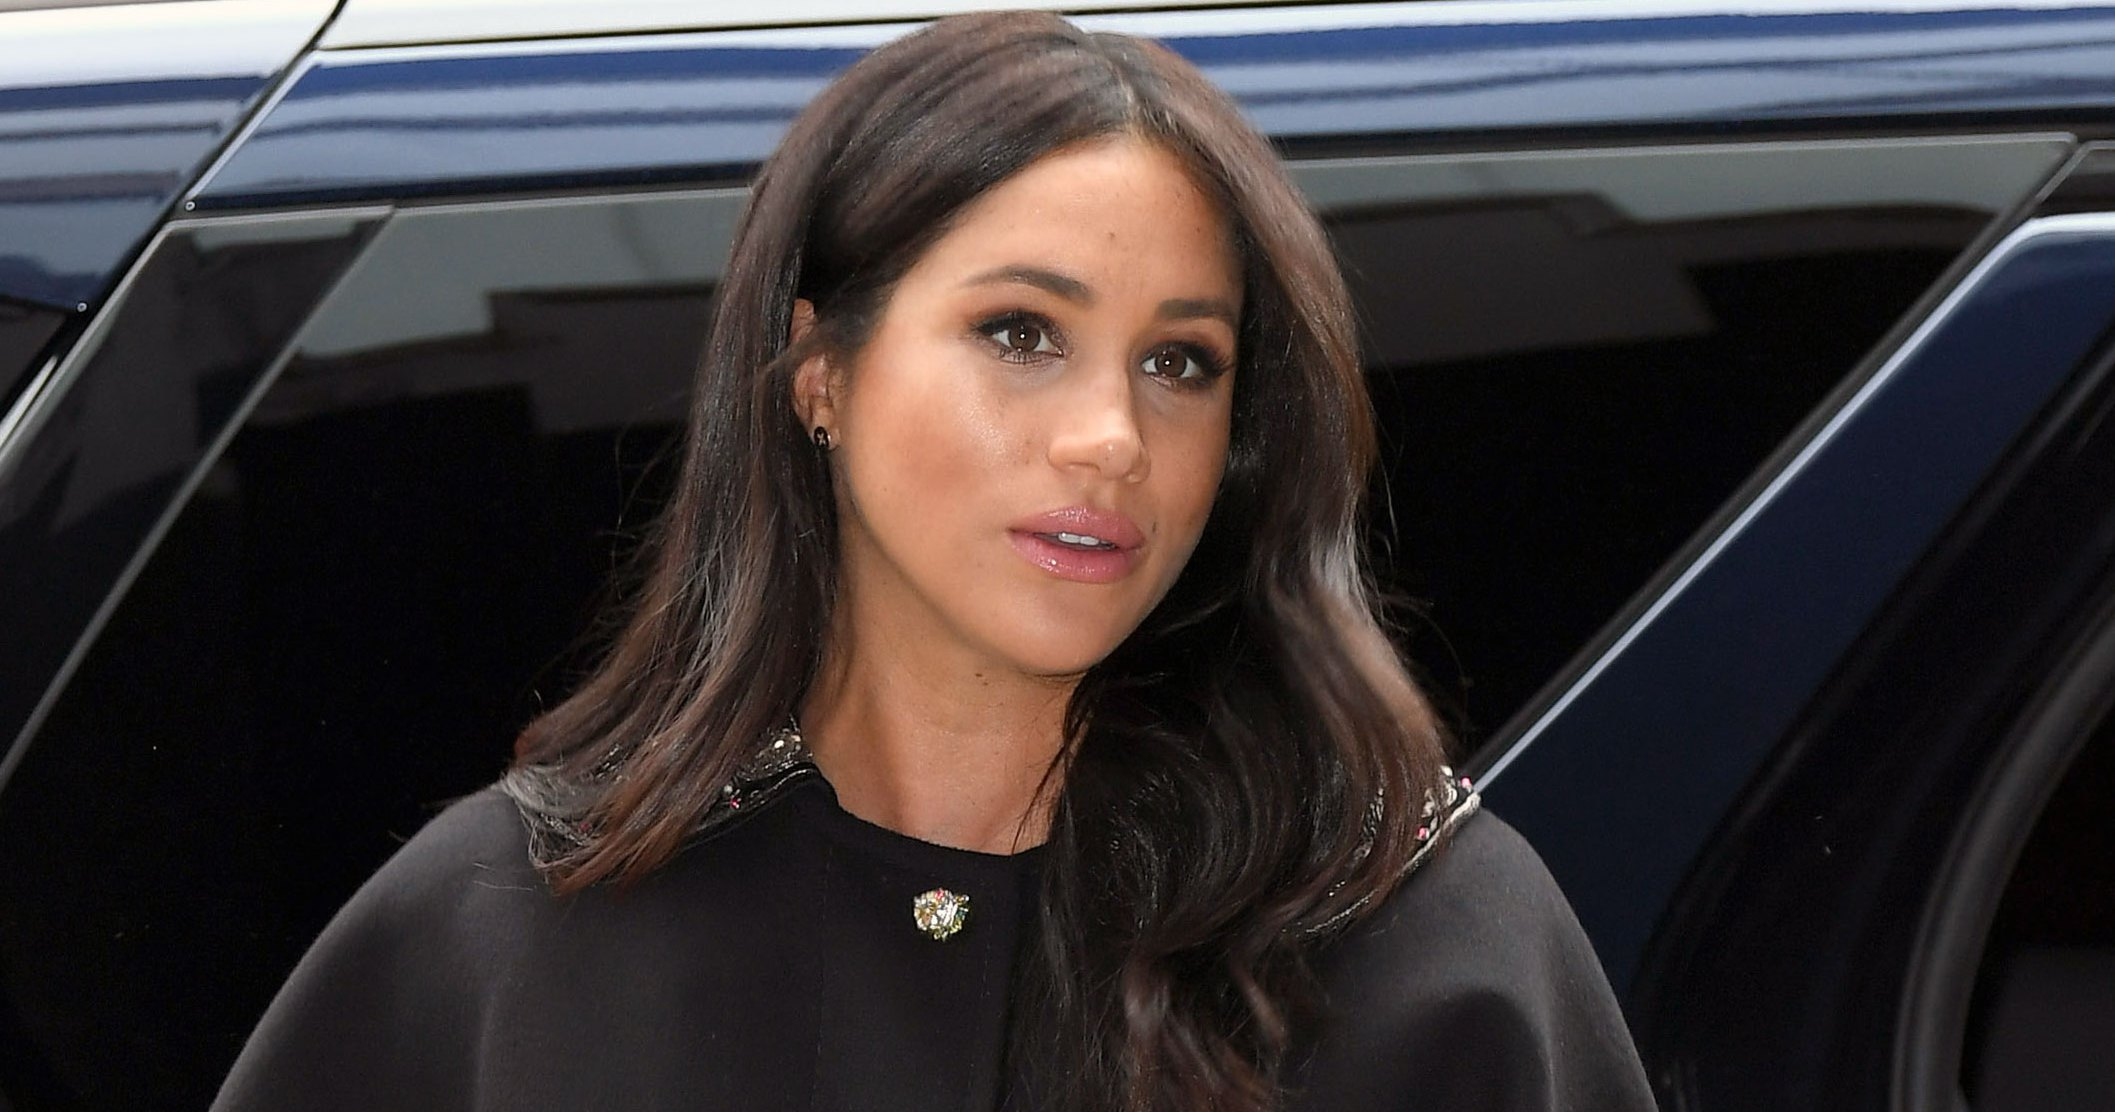 Duchess Meghan's Friend Says She Will Be a 'Strict' Mom to Son Archie